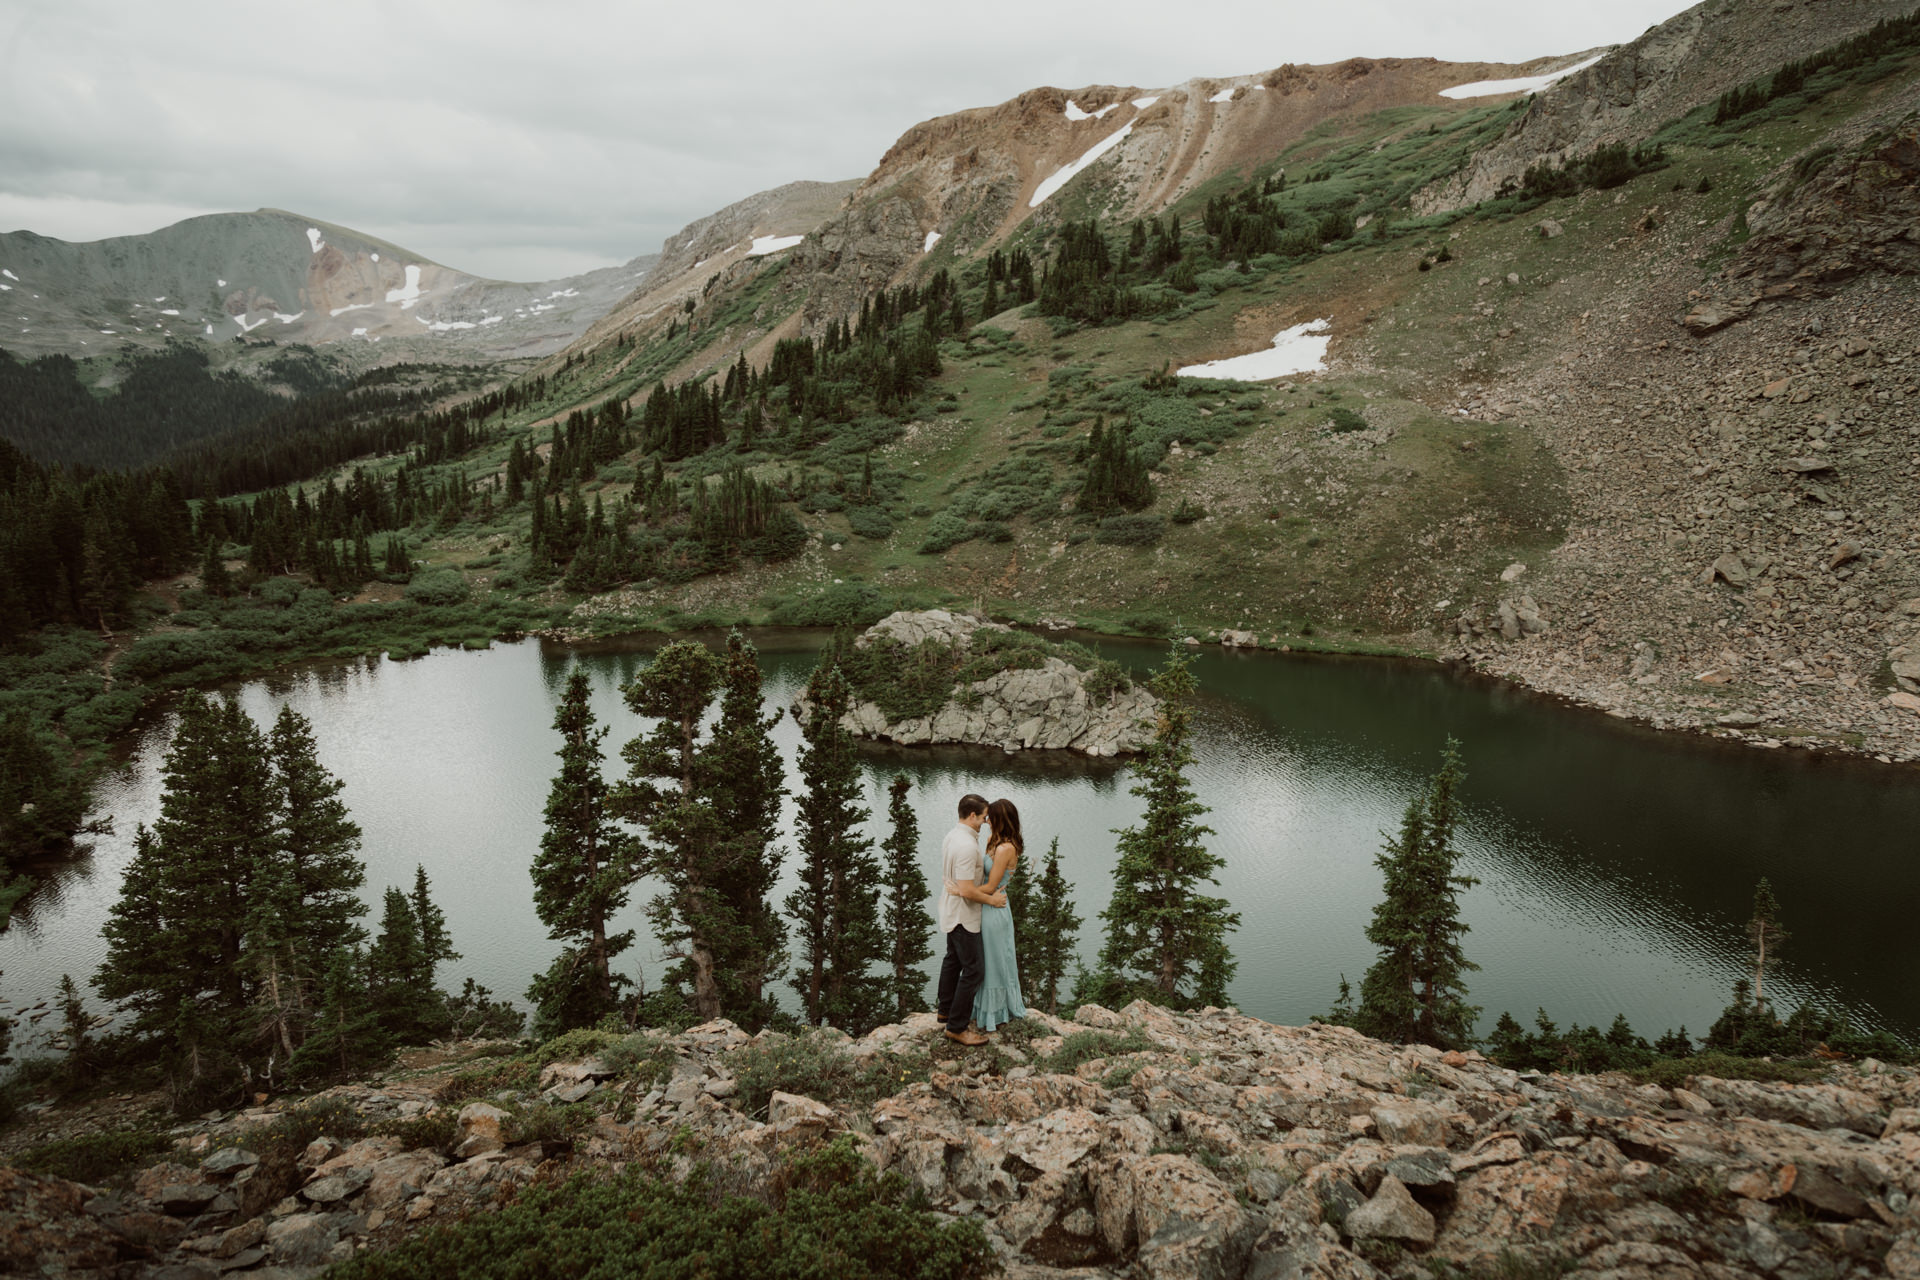 colorado-alpine-lake-adventure-engagements-21.jpg